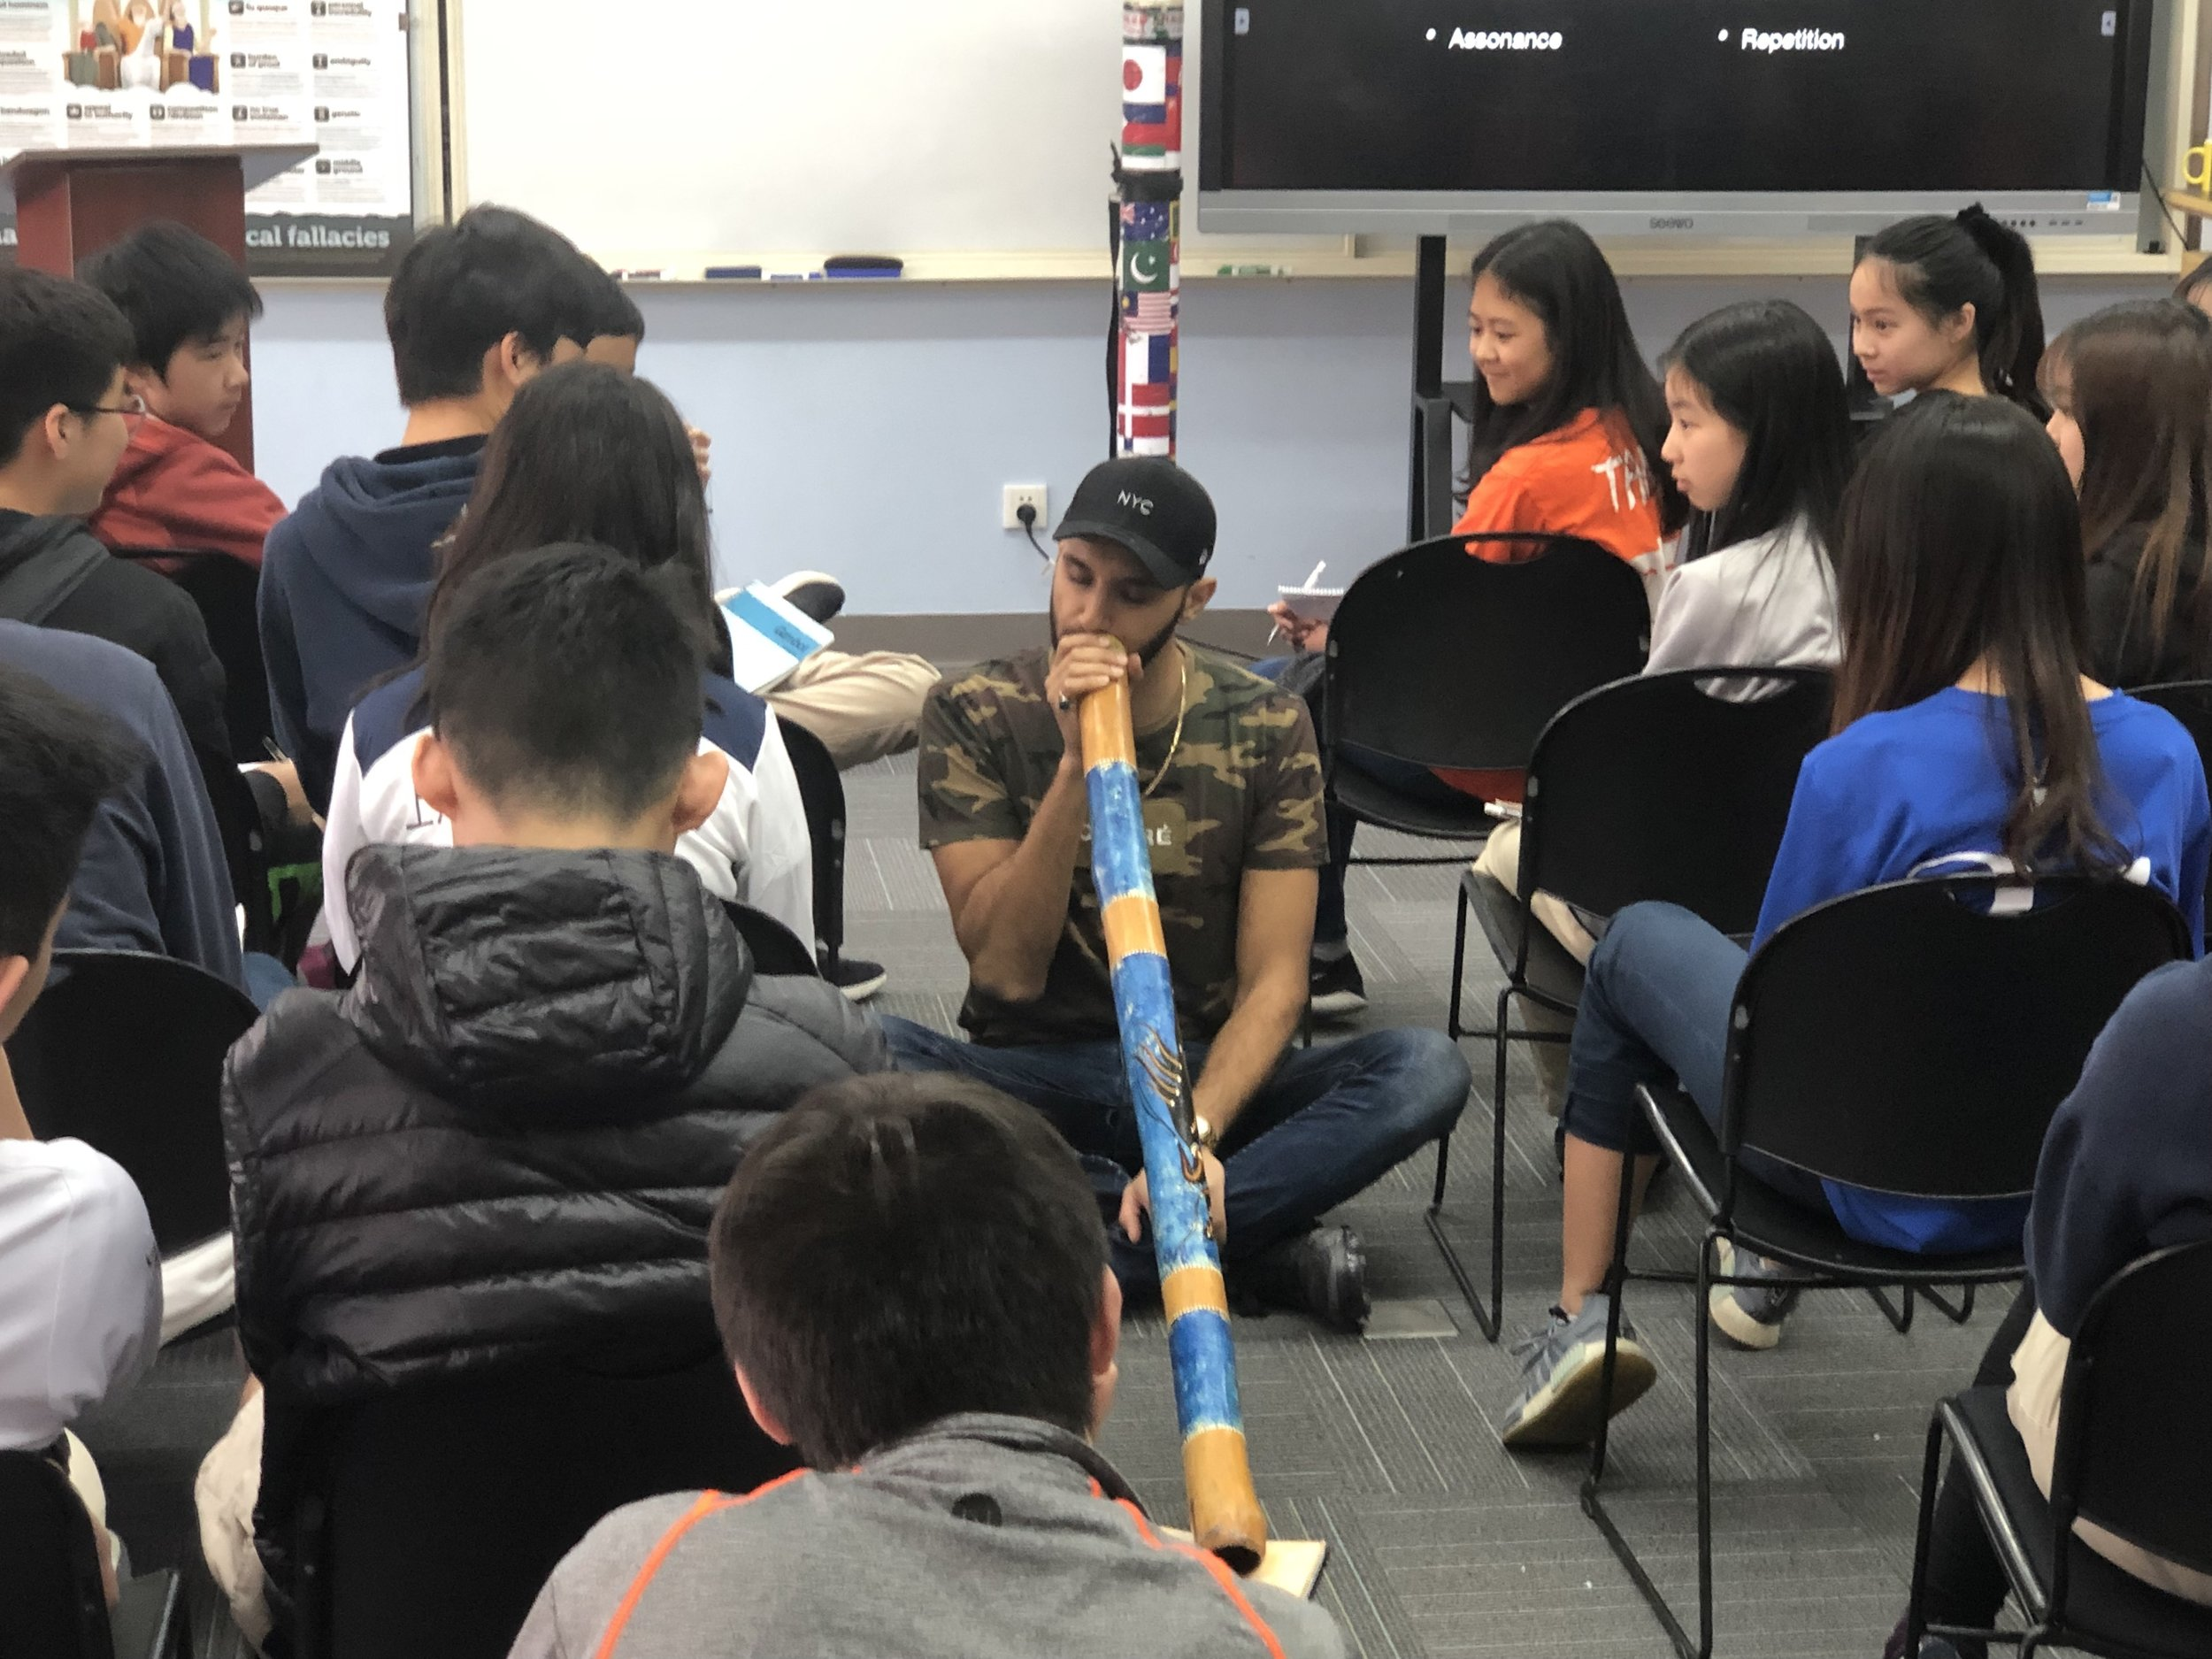 Zohab played his didgeridoo during poetry workshops with students, tying together music, performance and the beauty of words.